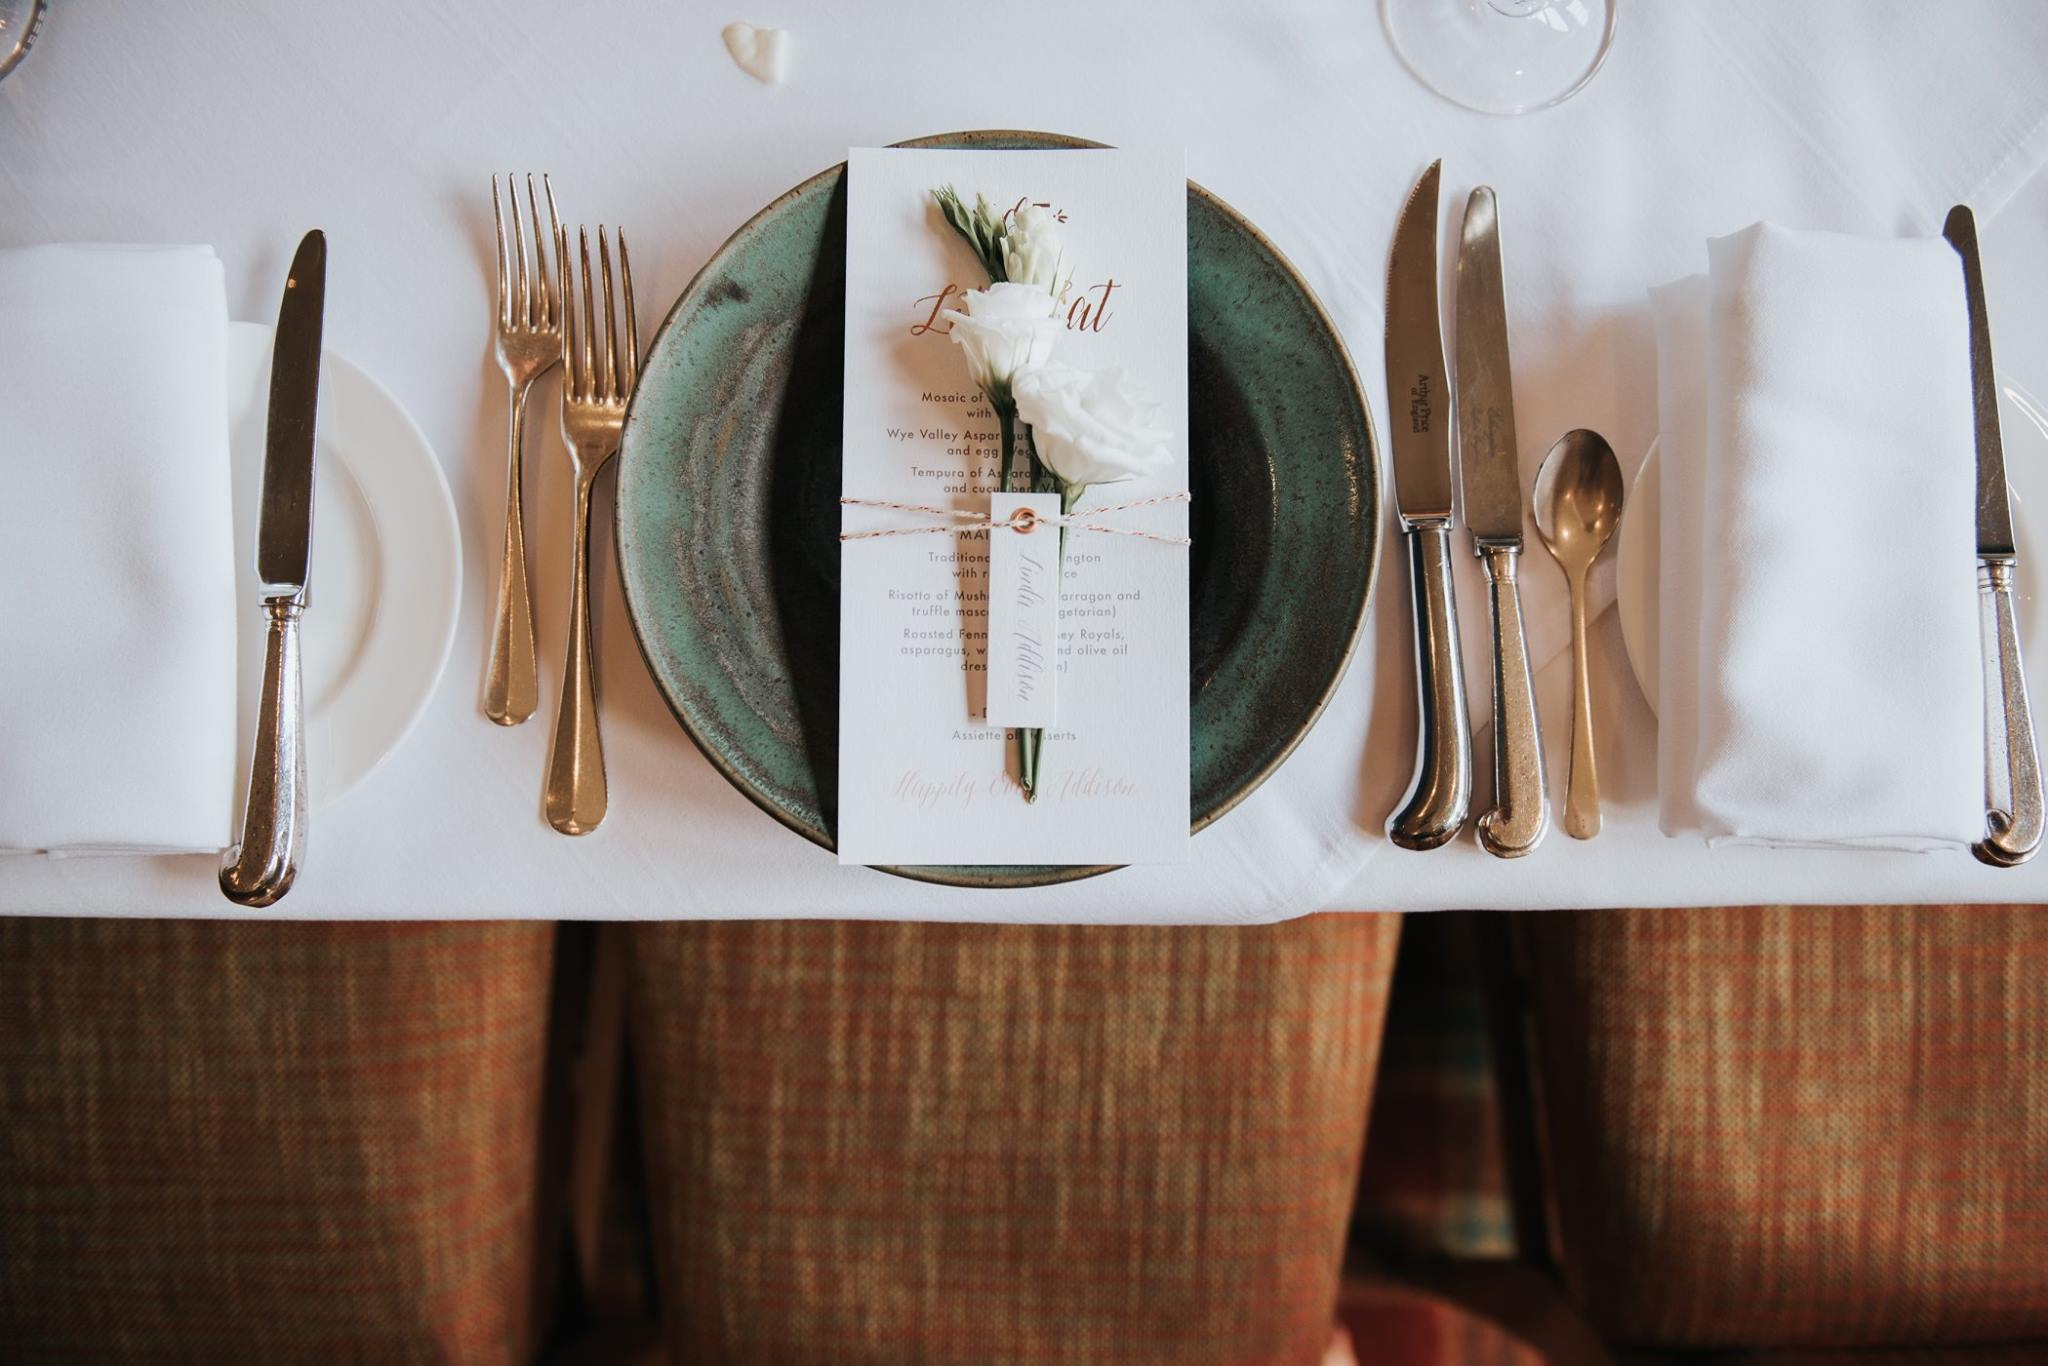 Wedding table setting with venue and place names